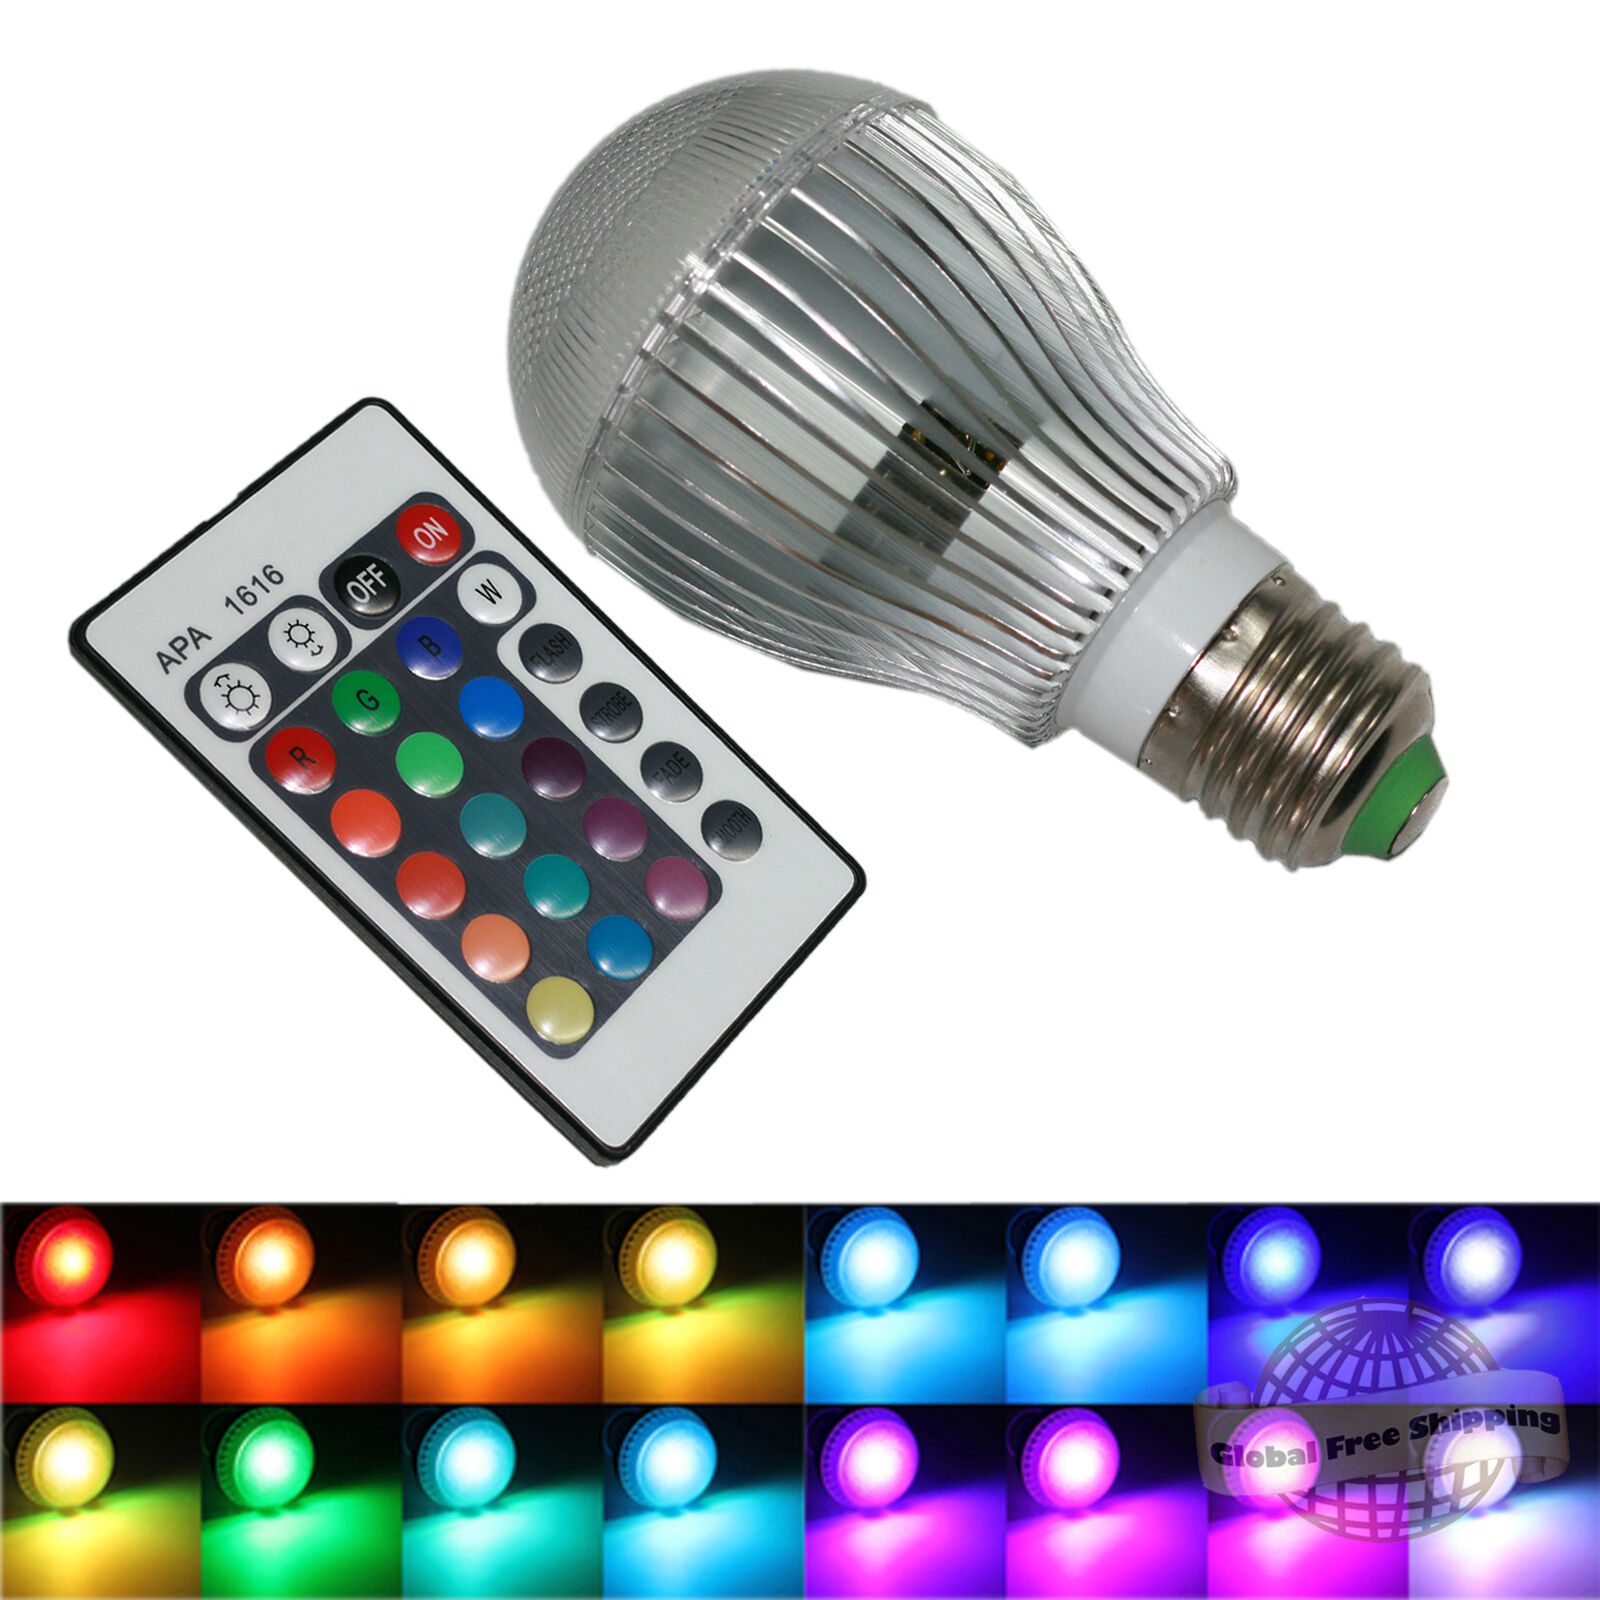 16 colors changing 9w magic e27 rgb led lamp light bulb ir remote picture 1 of 8 parisarafo Image collections